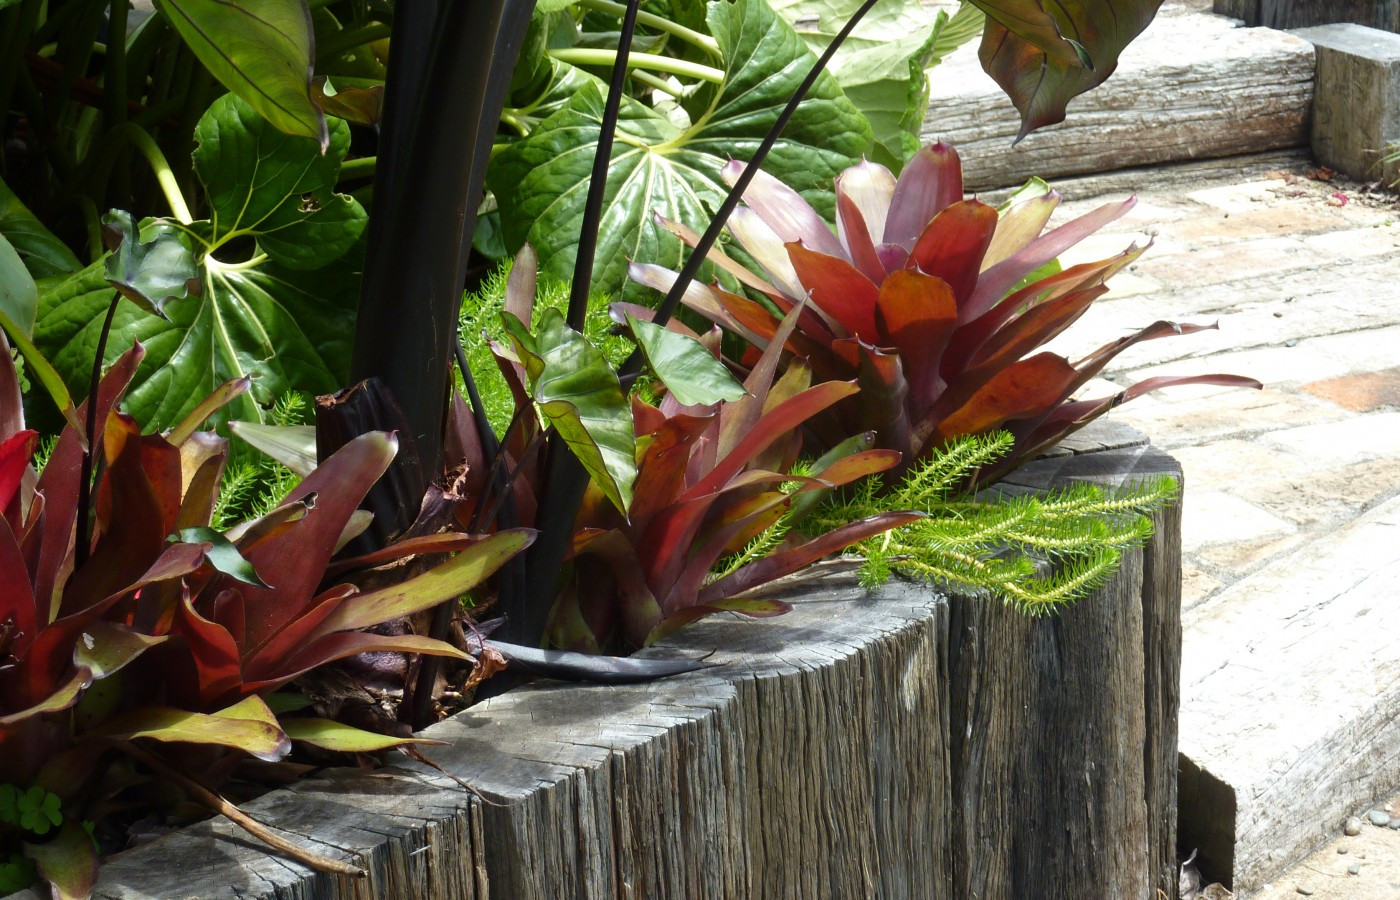 Bromeliads exotic planting in raised bed of reclaimed sleepers